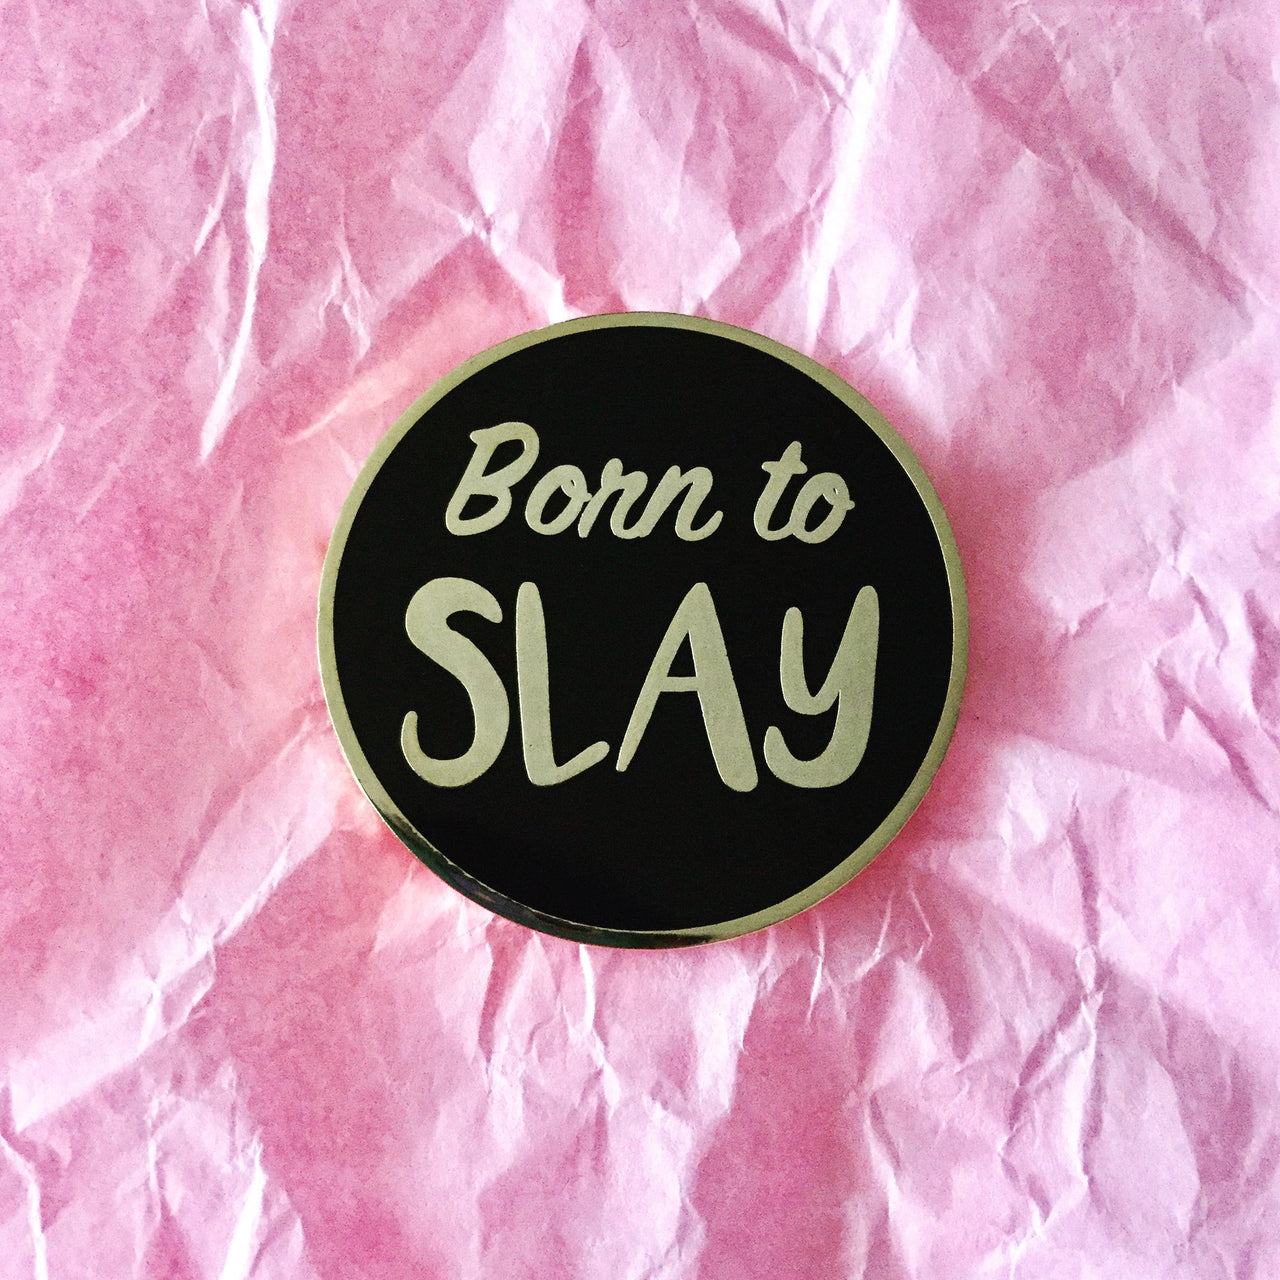 Born to slay enamel pin - Radical Buttons